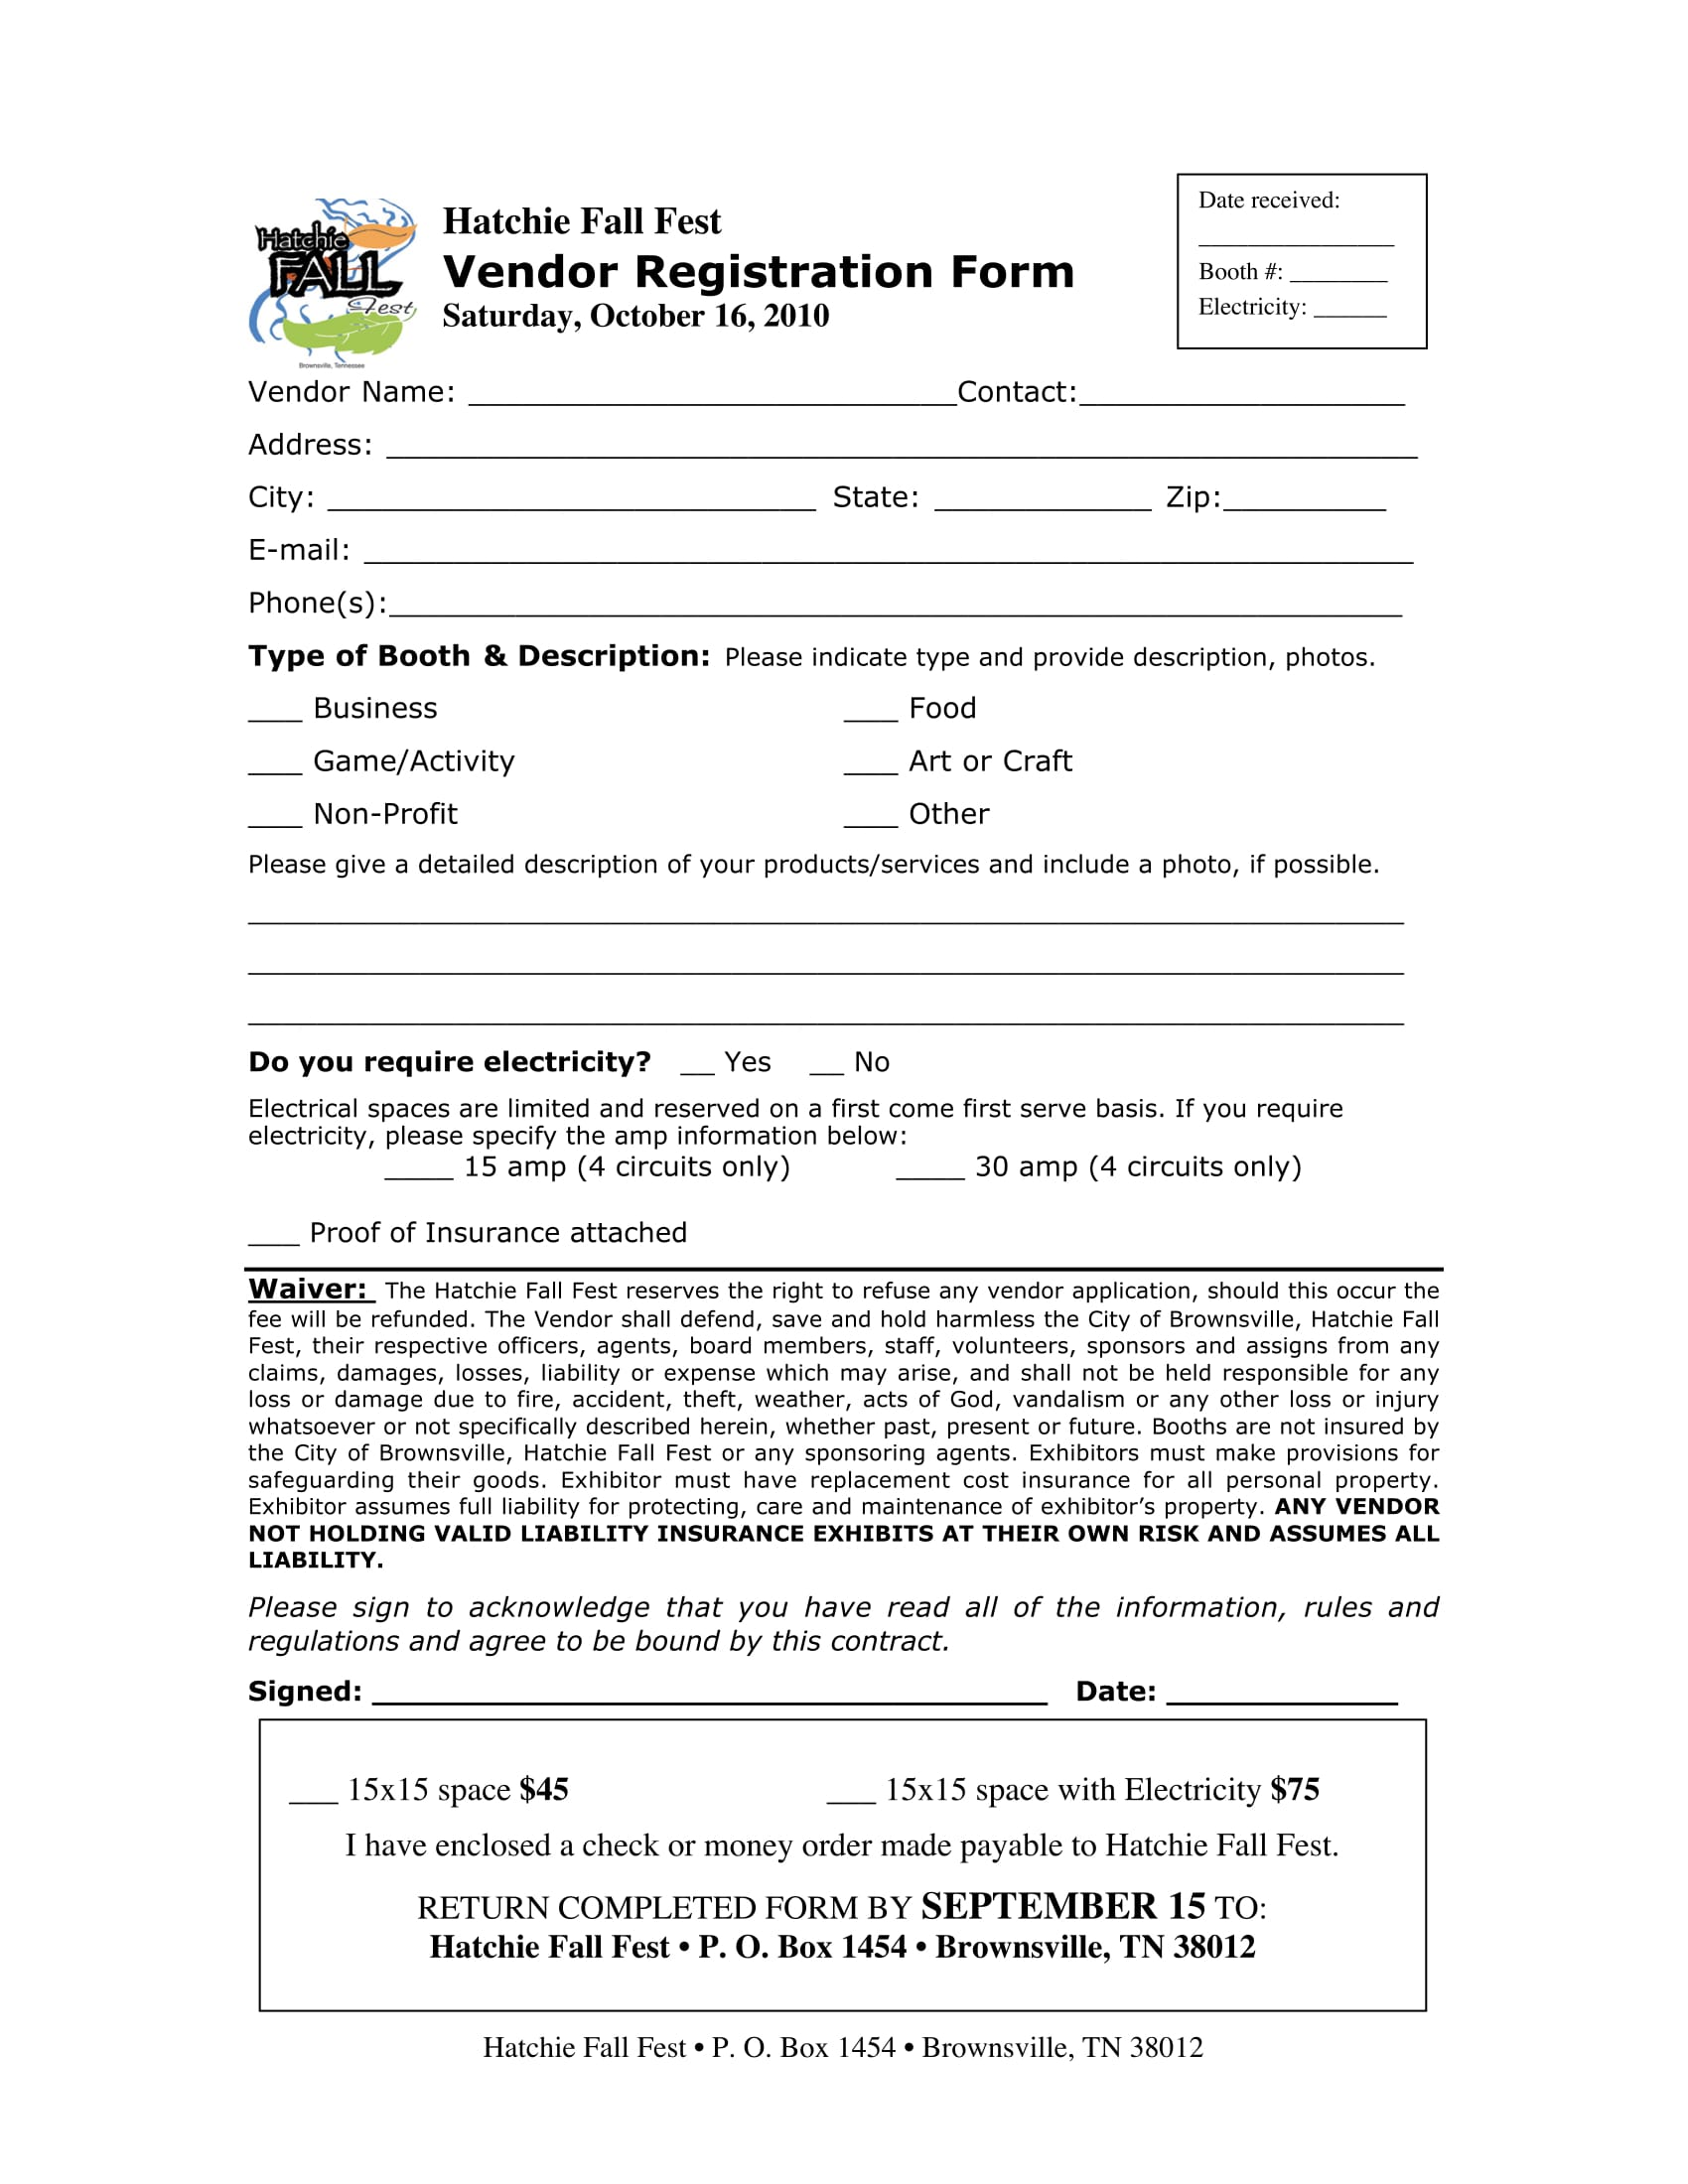 Fall-Fest-Event-Vendor-Registration-Form-2 Vendors Application Forms on founders day festival food, turquoise trail art fest, festival food, music festival, for event template, completed city hialeah,